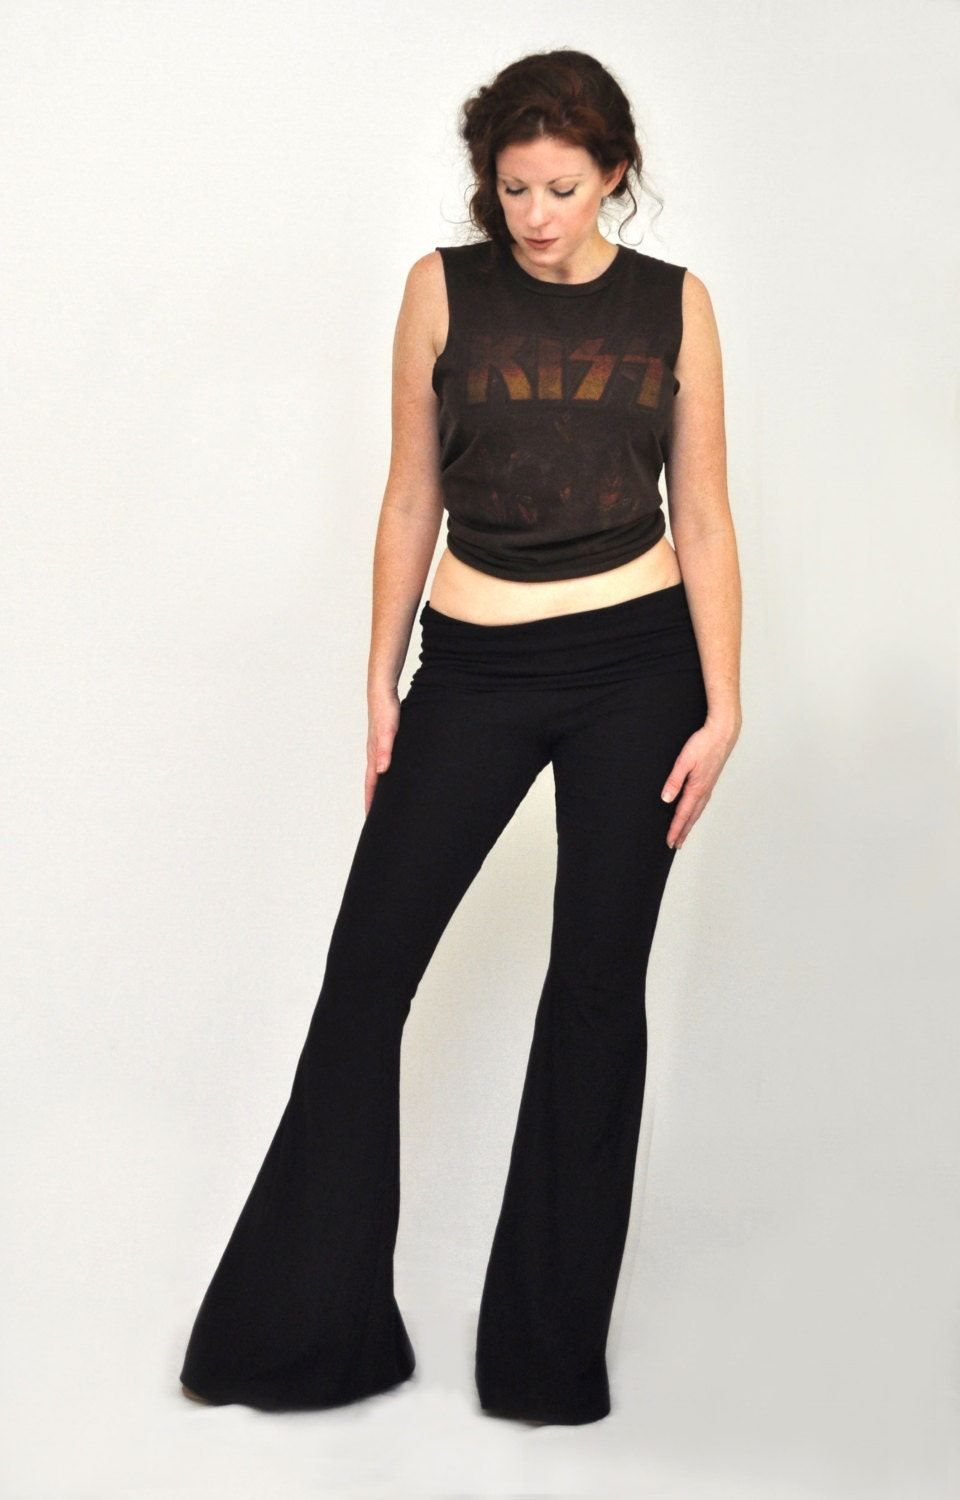 Foldover Waistband Bell Bottoms Low Cut Flare Leg Pants By